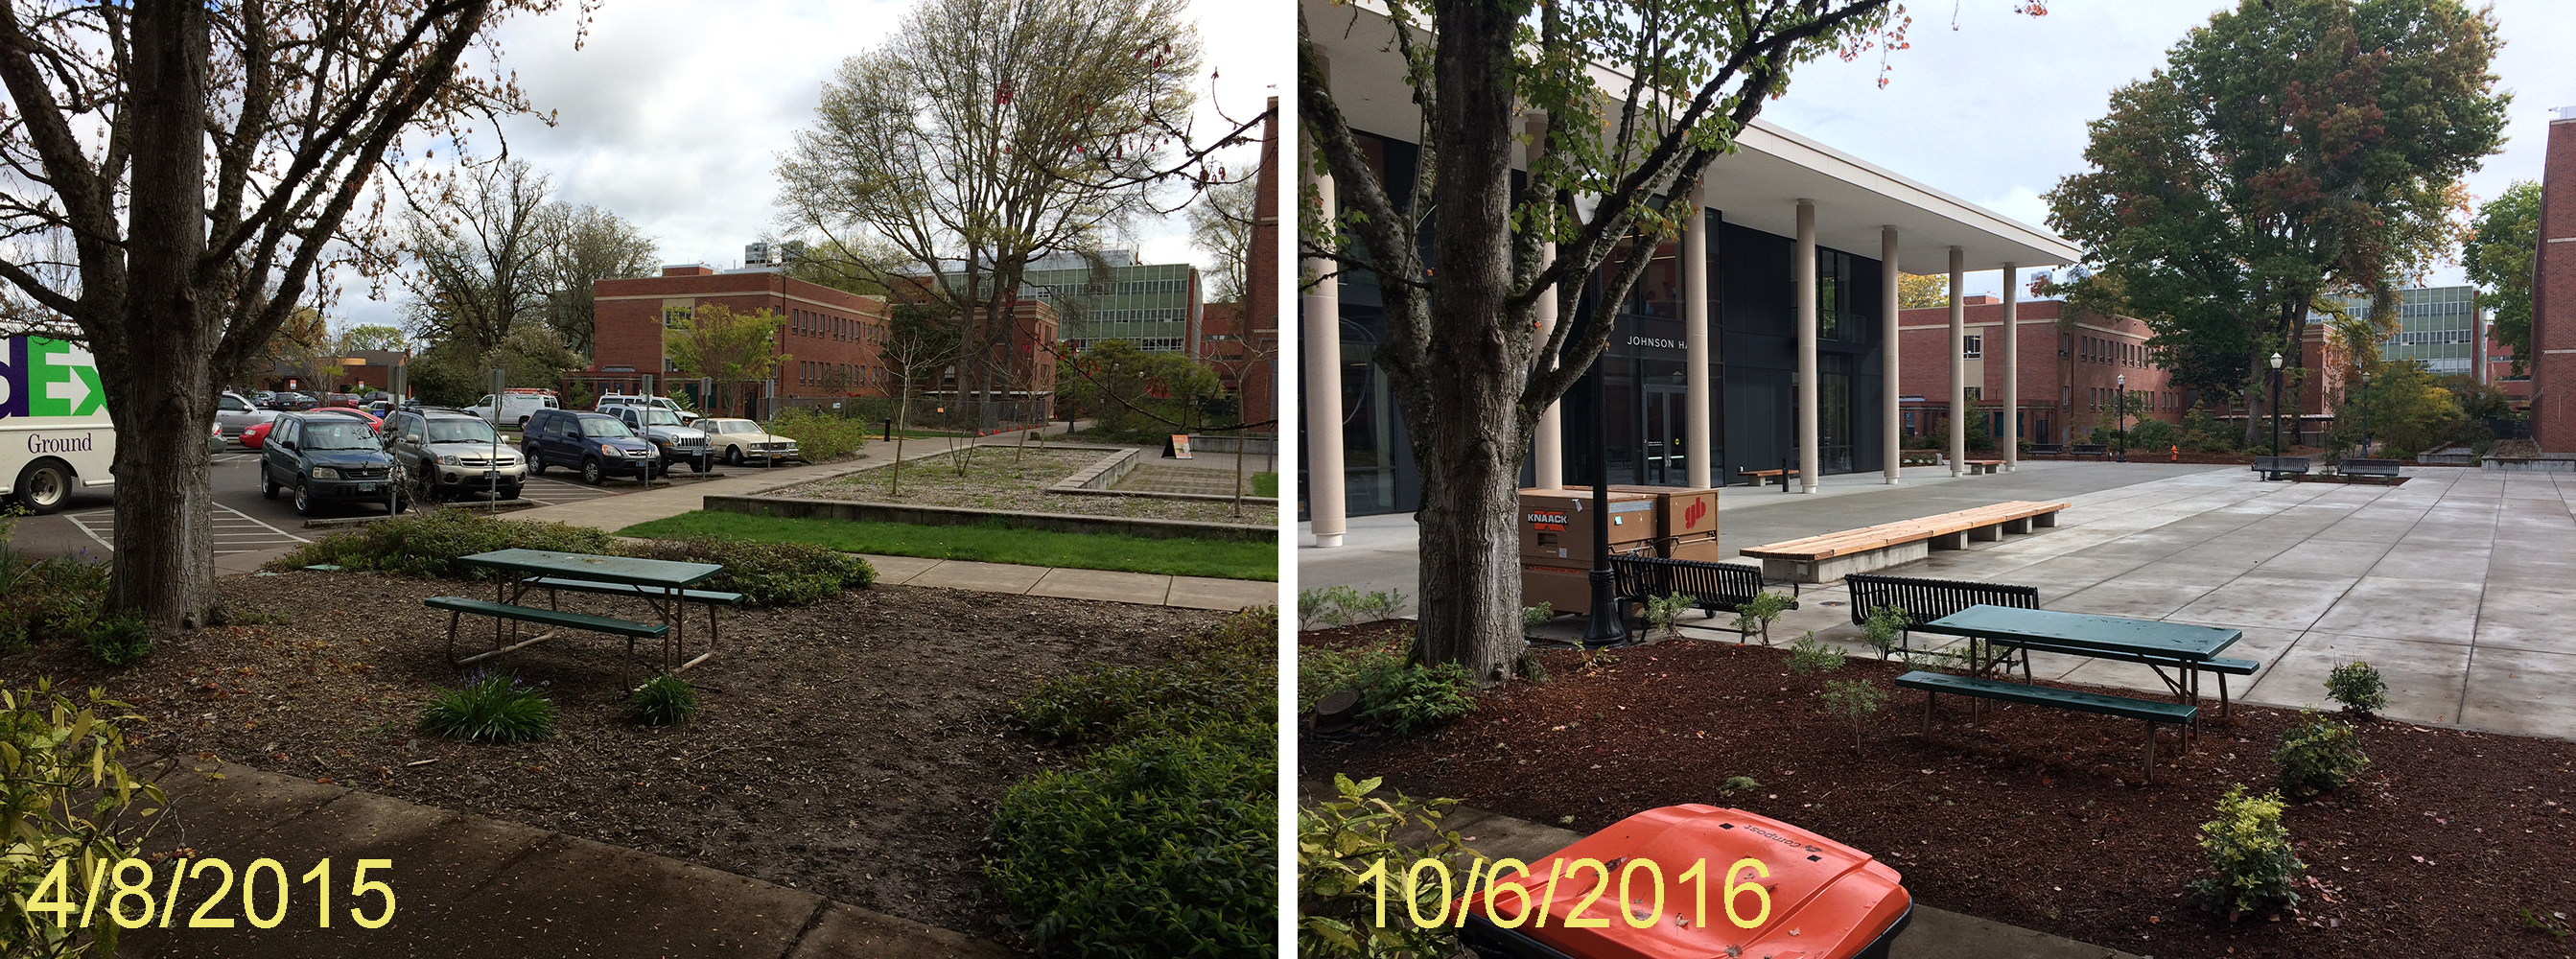 Johnson Hall before and after construction